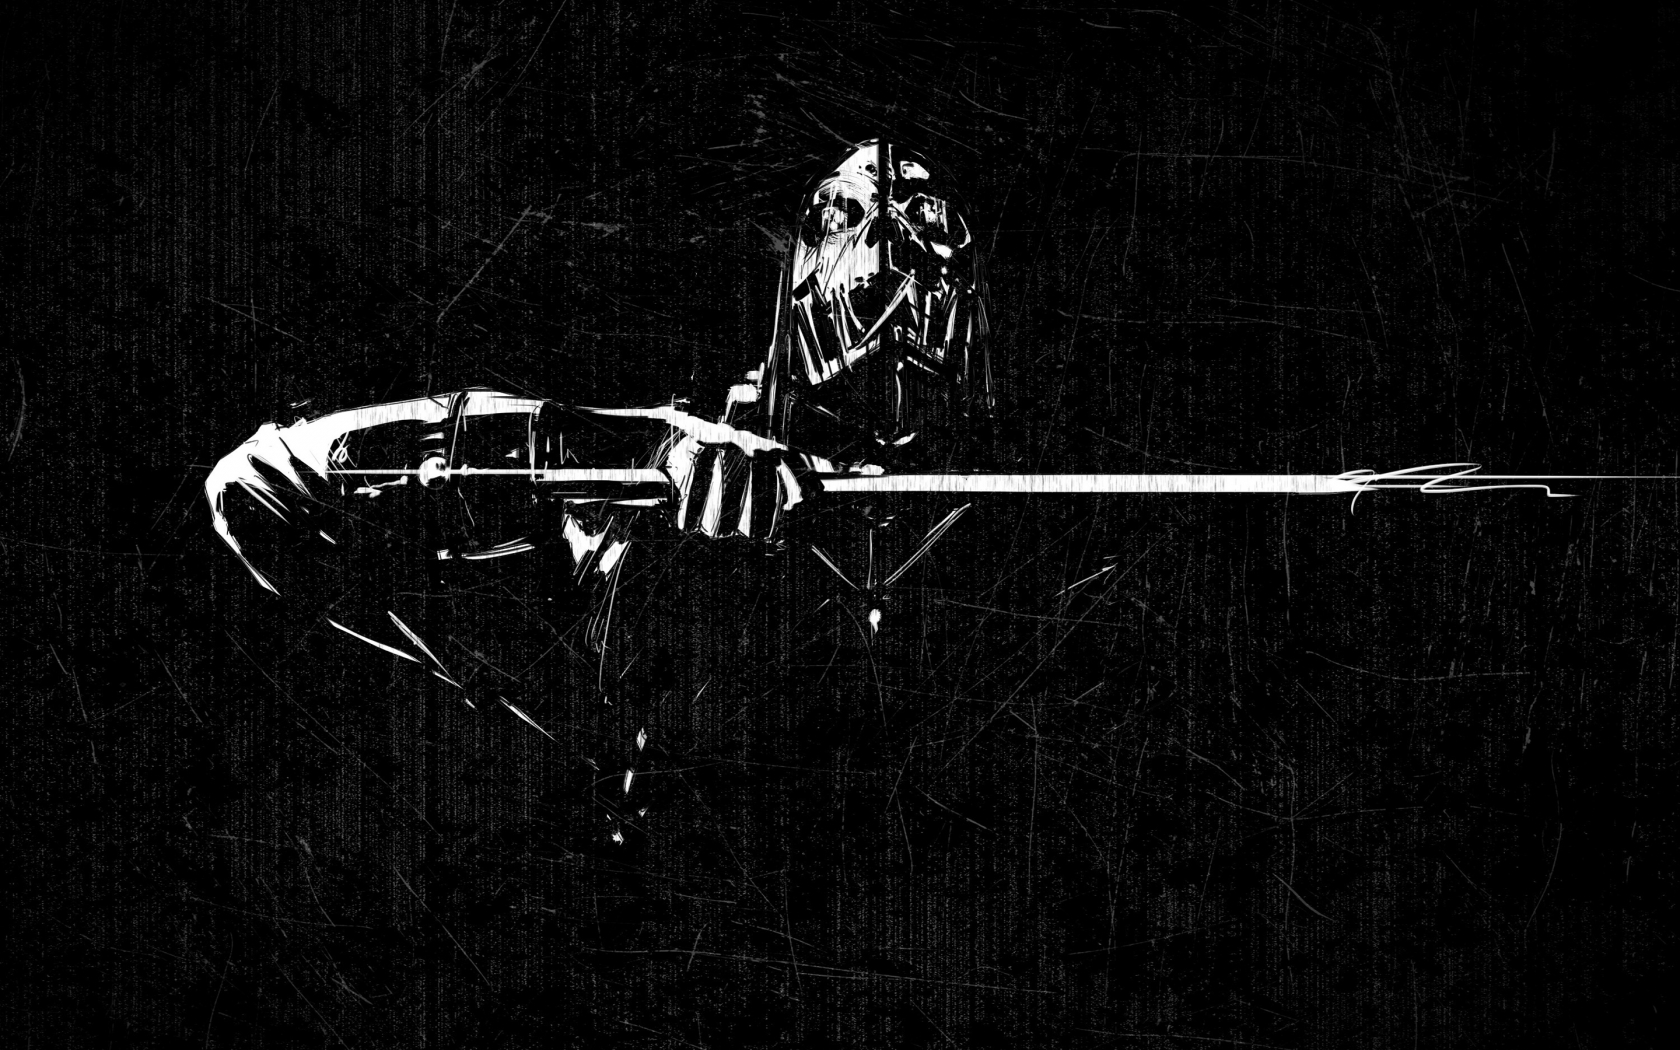 Dishonored Scraped Minimal for 1680 x 1050 widescreen resolution